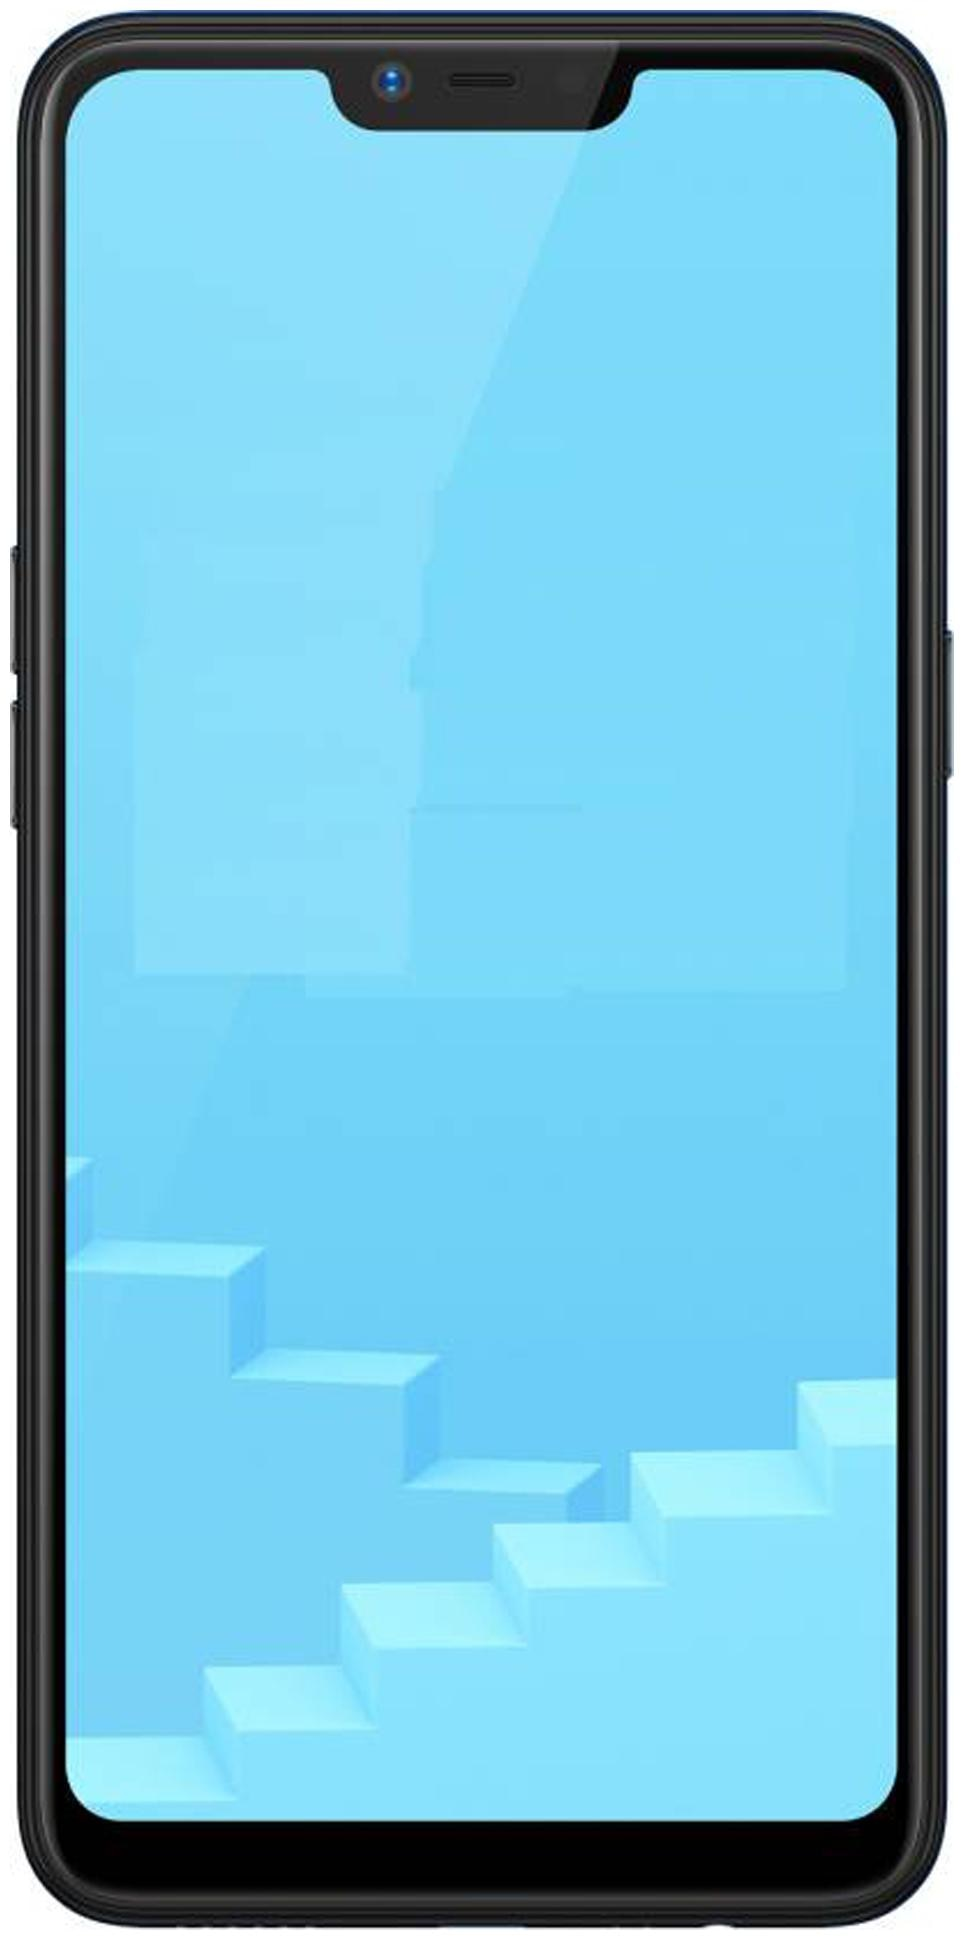 Realme C1 2 GB 16 GB Mirror Black